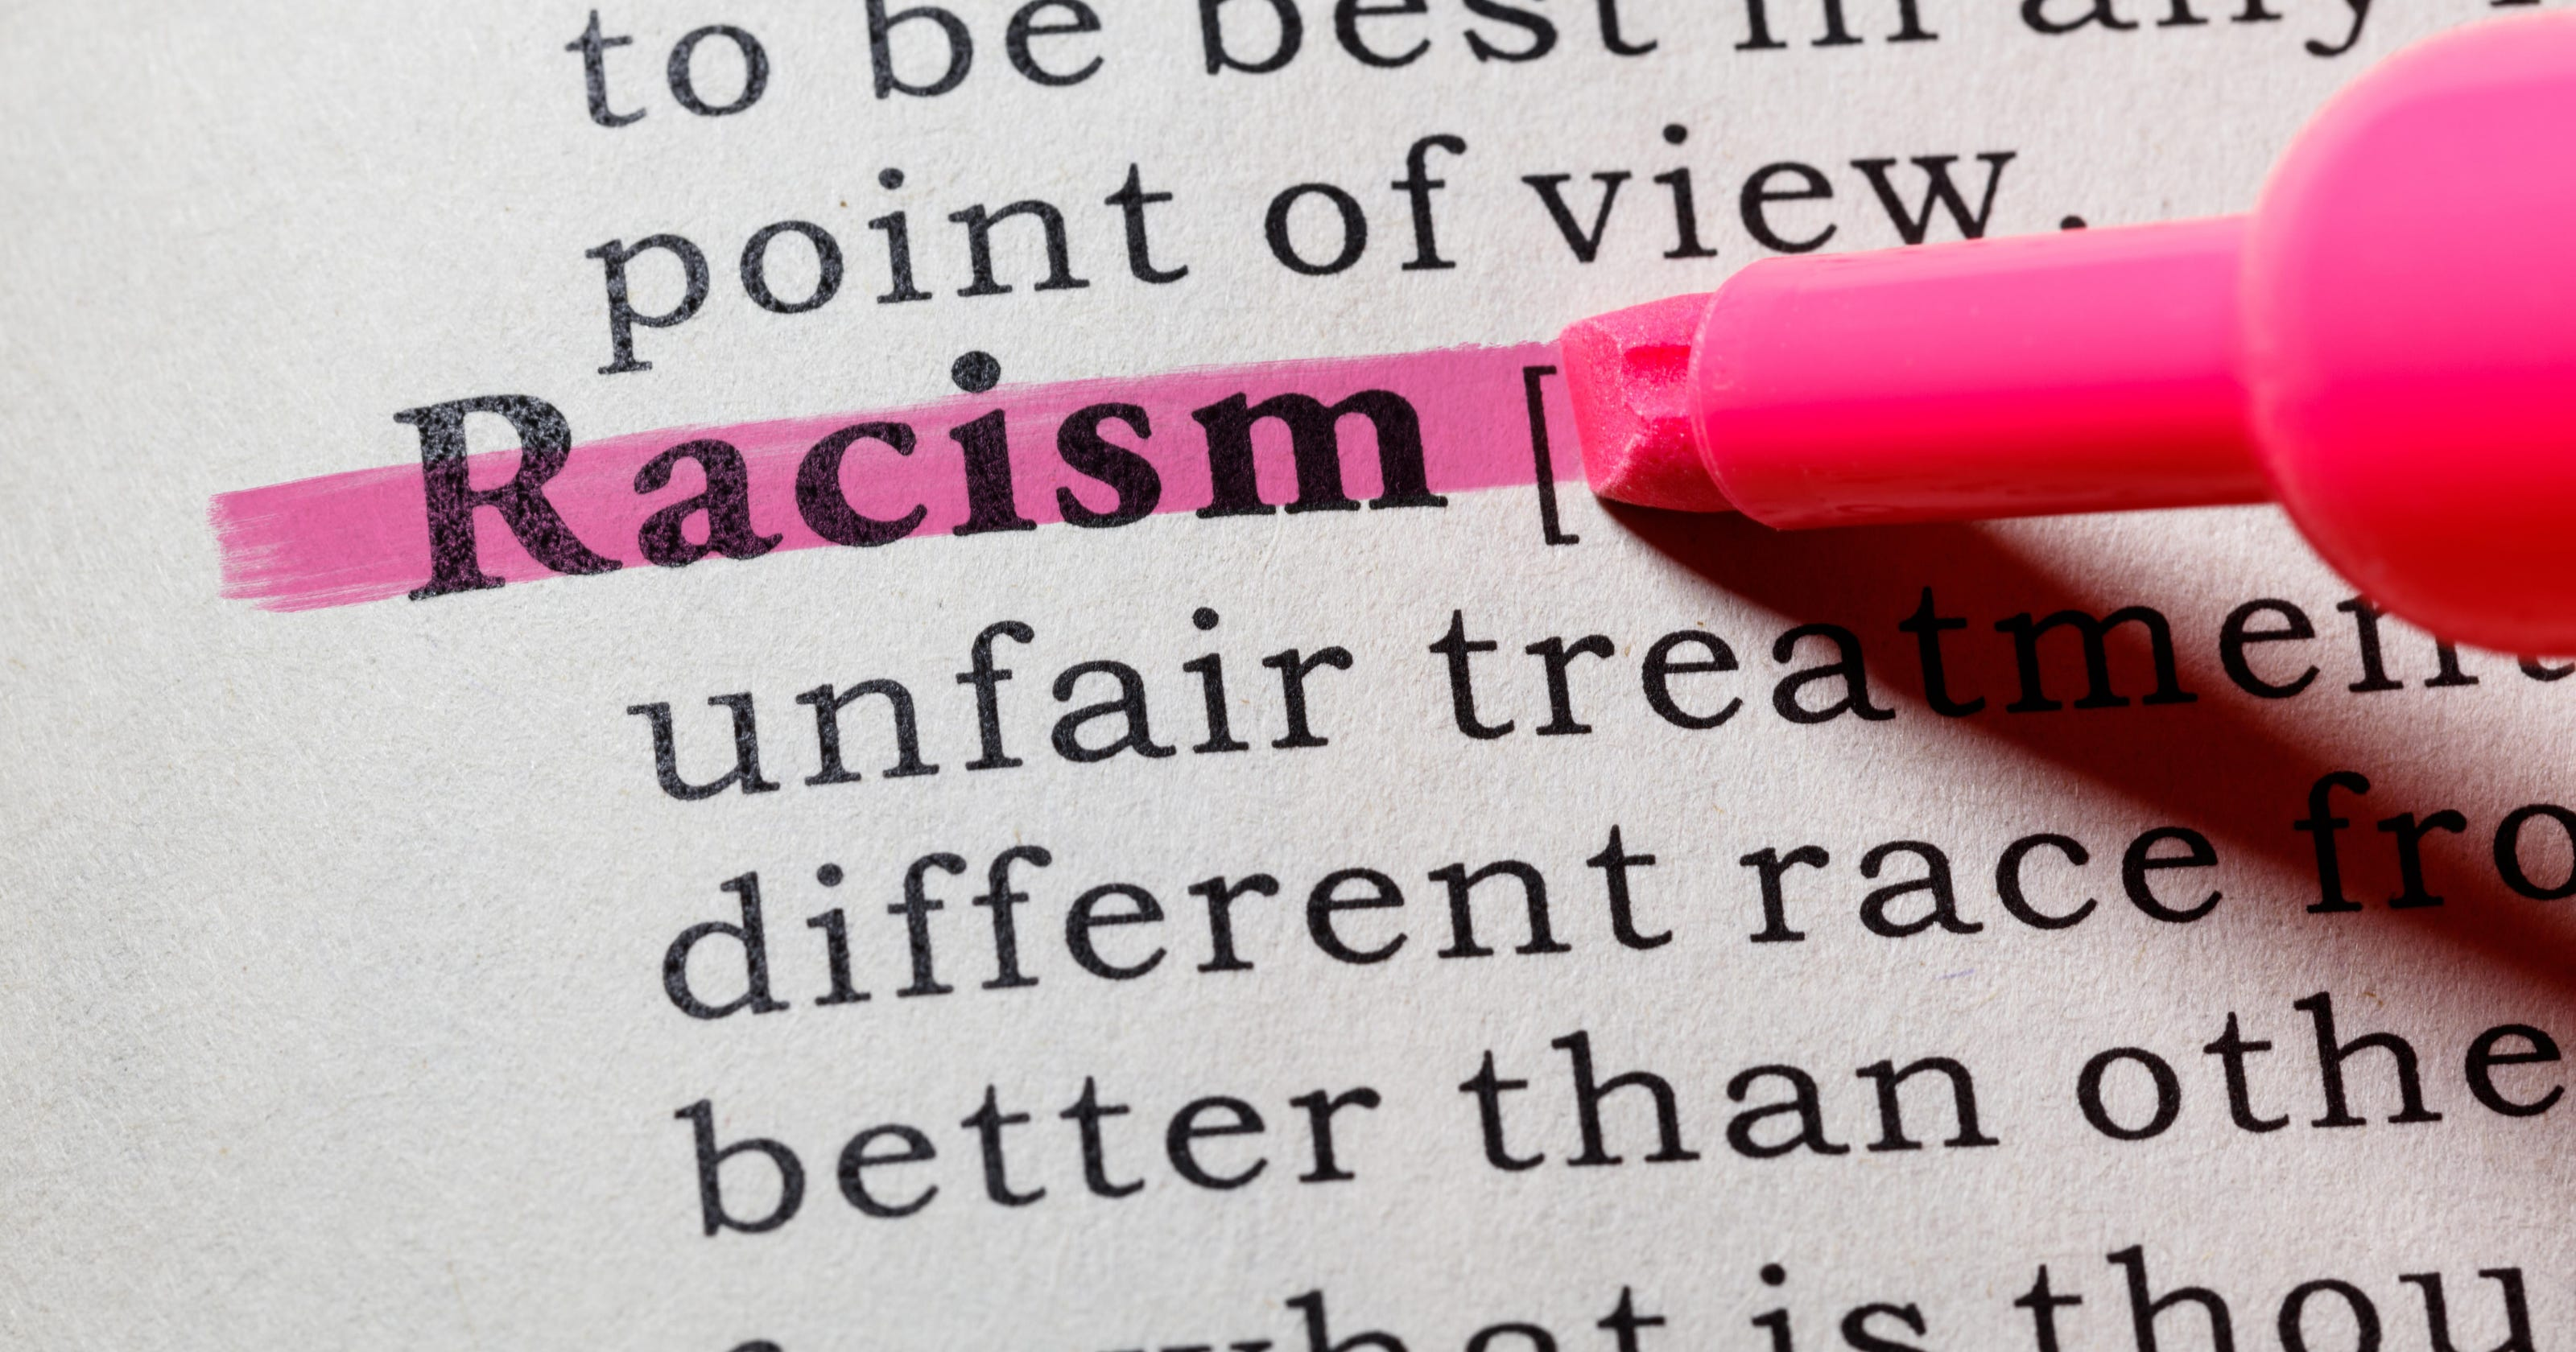 Pretending racism doesn't exist isn't working. Time to